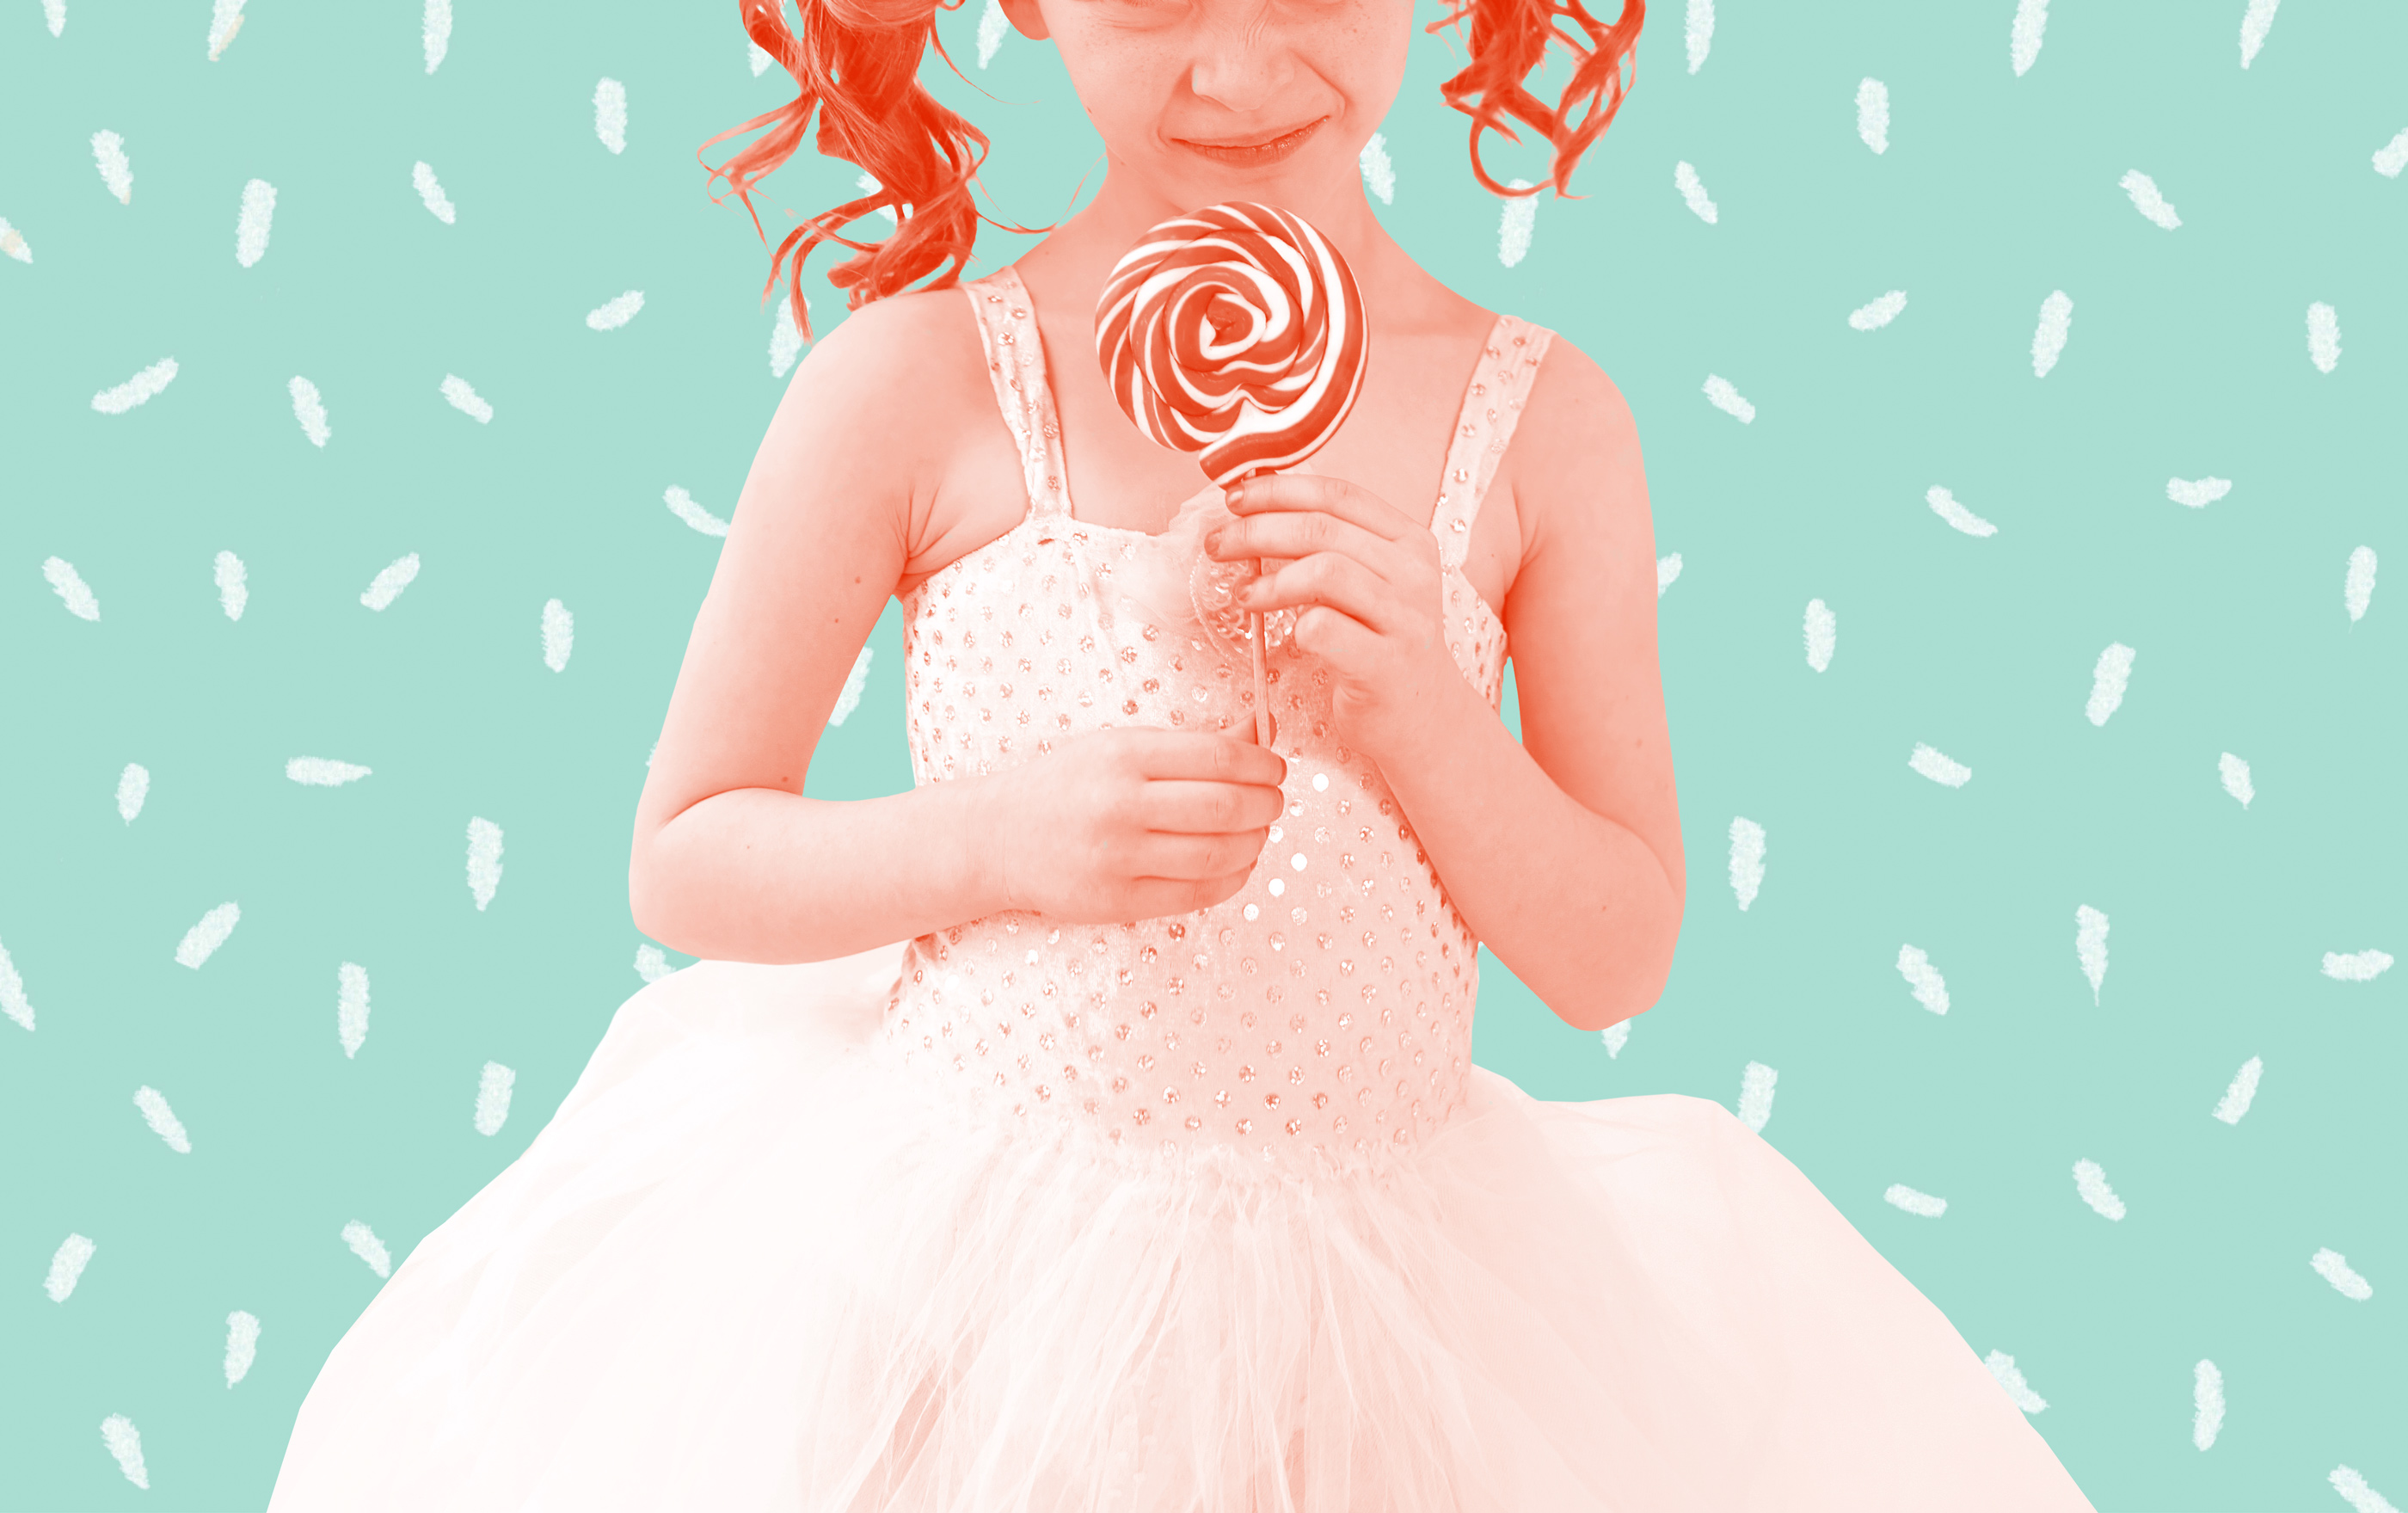 girl in tutu with lollipop in front of sprinkles background